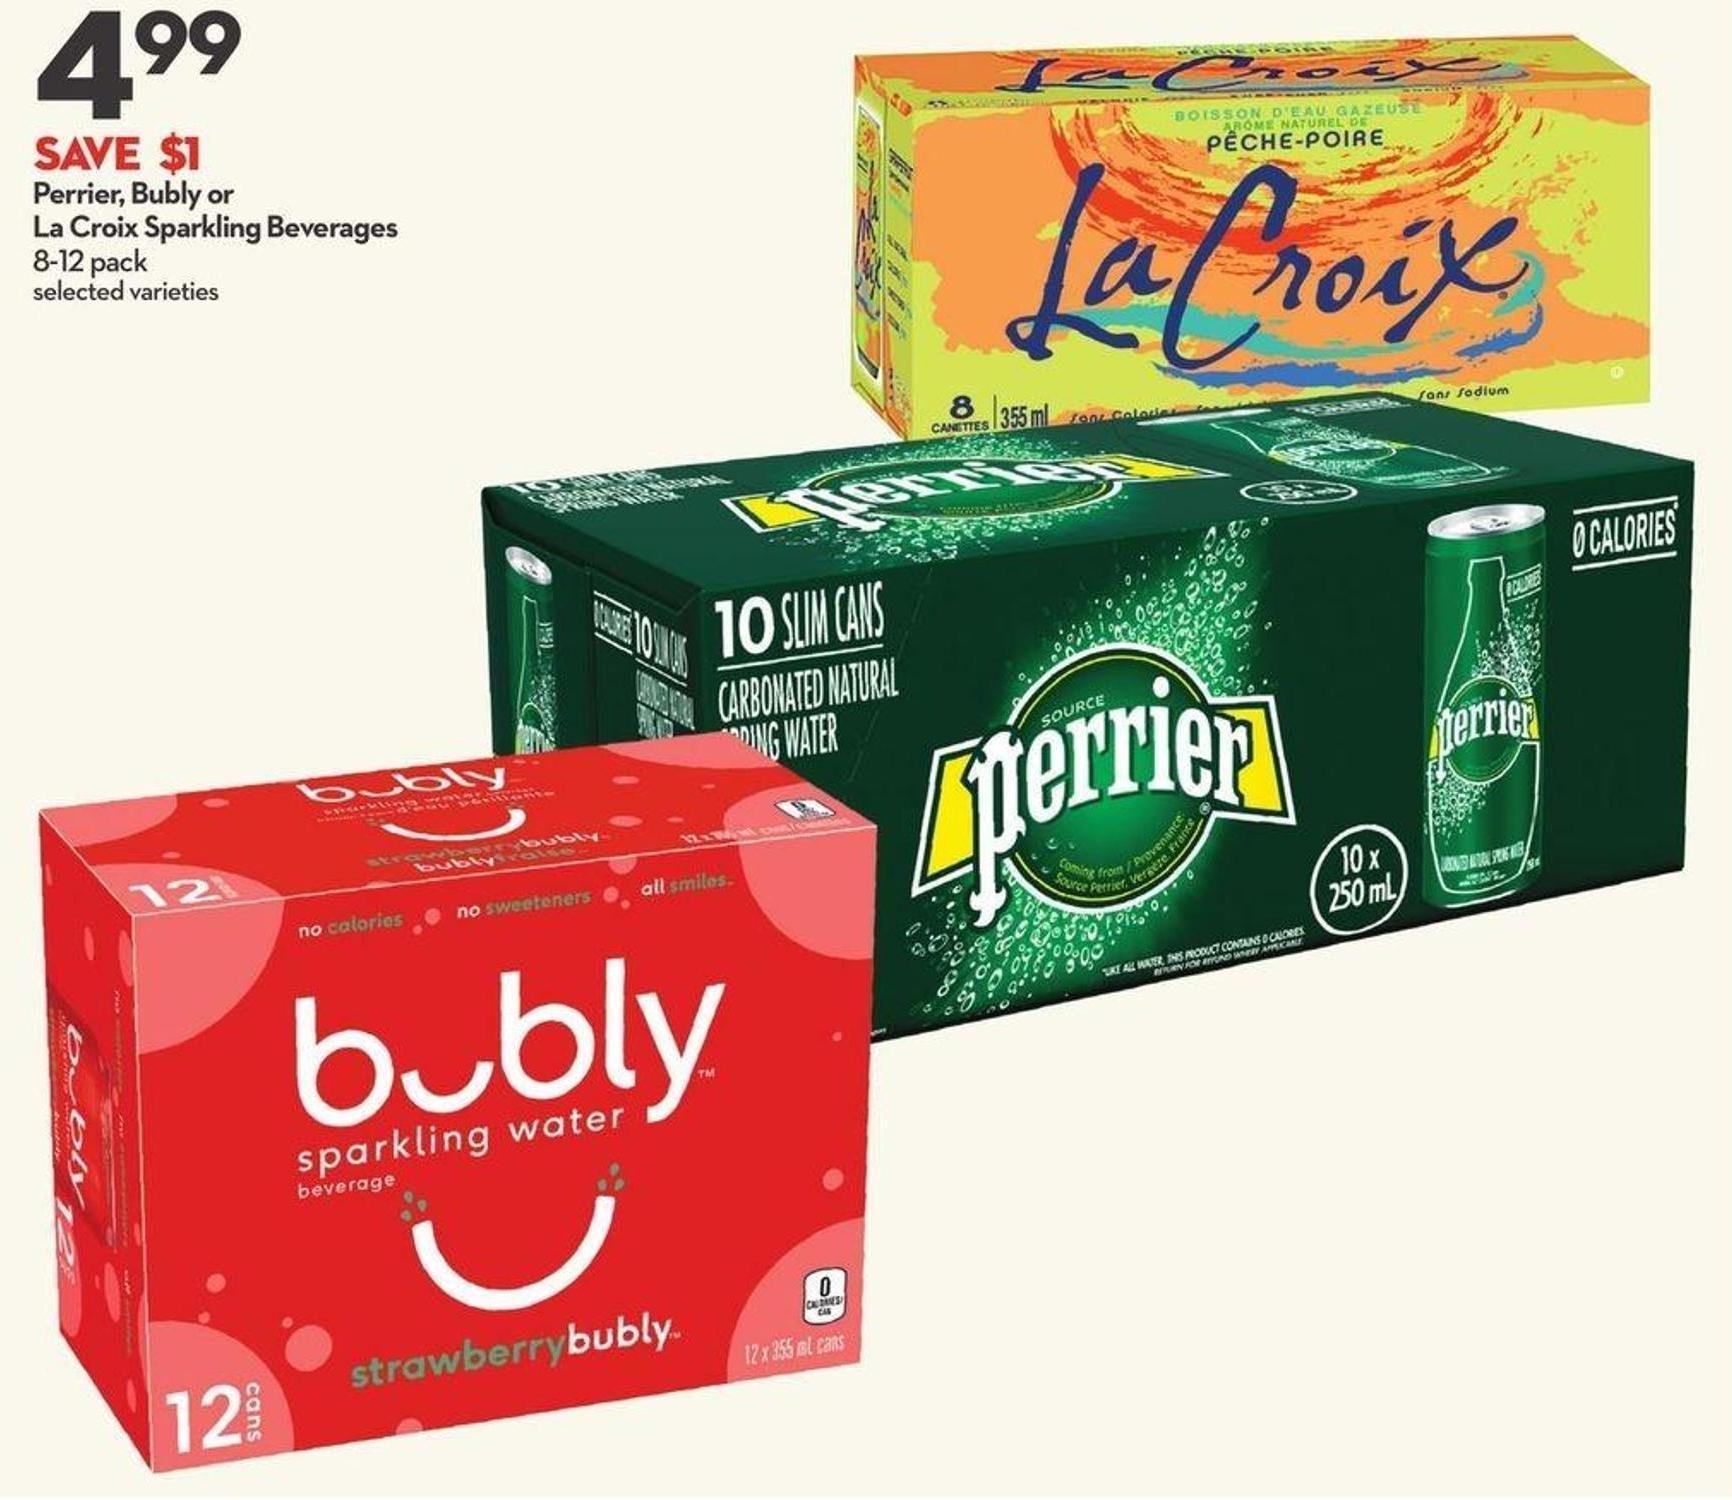 Perrier - Bubly or La Croix Sparkling Beverages